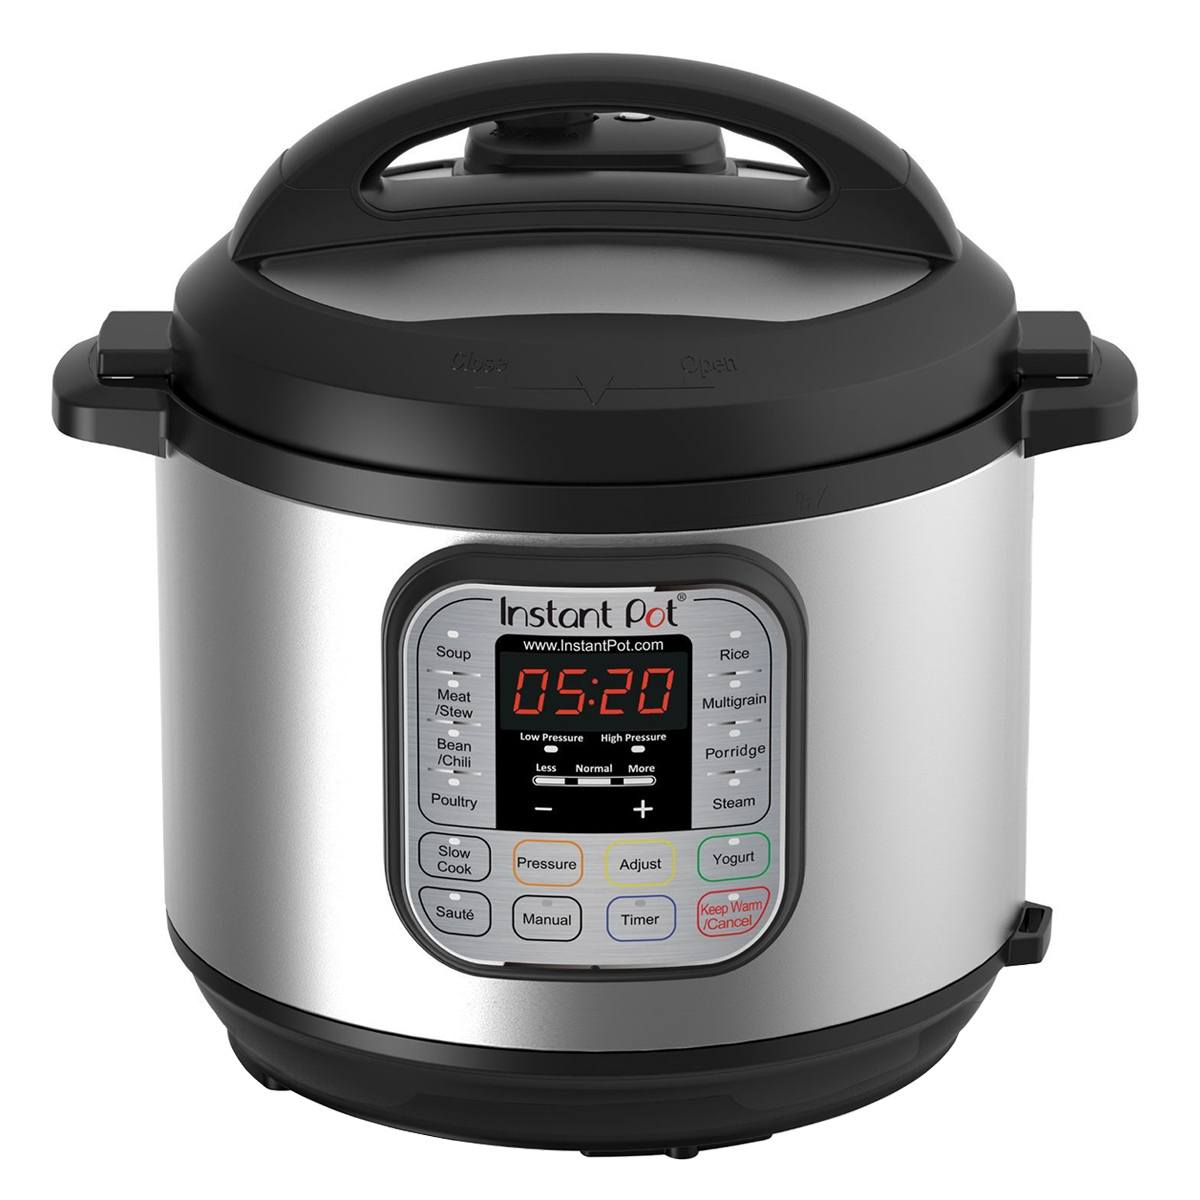 Instant Pot IP-DUO60 7-in-1 Multi-Functional Slow Cooker